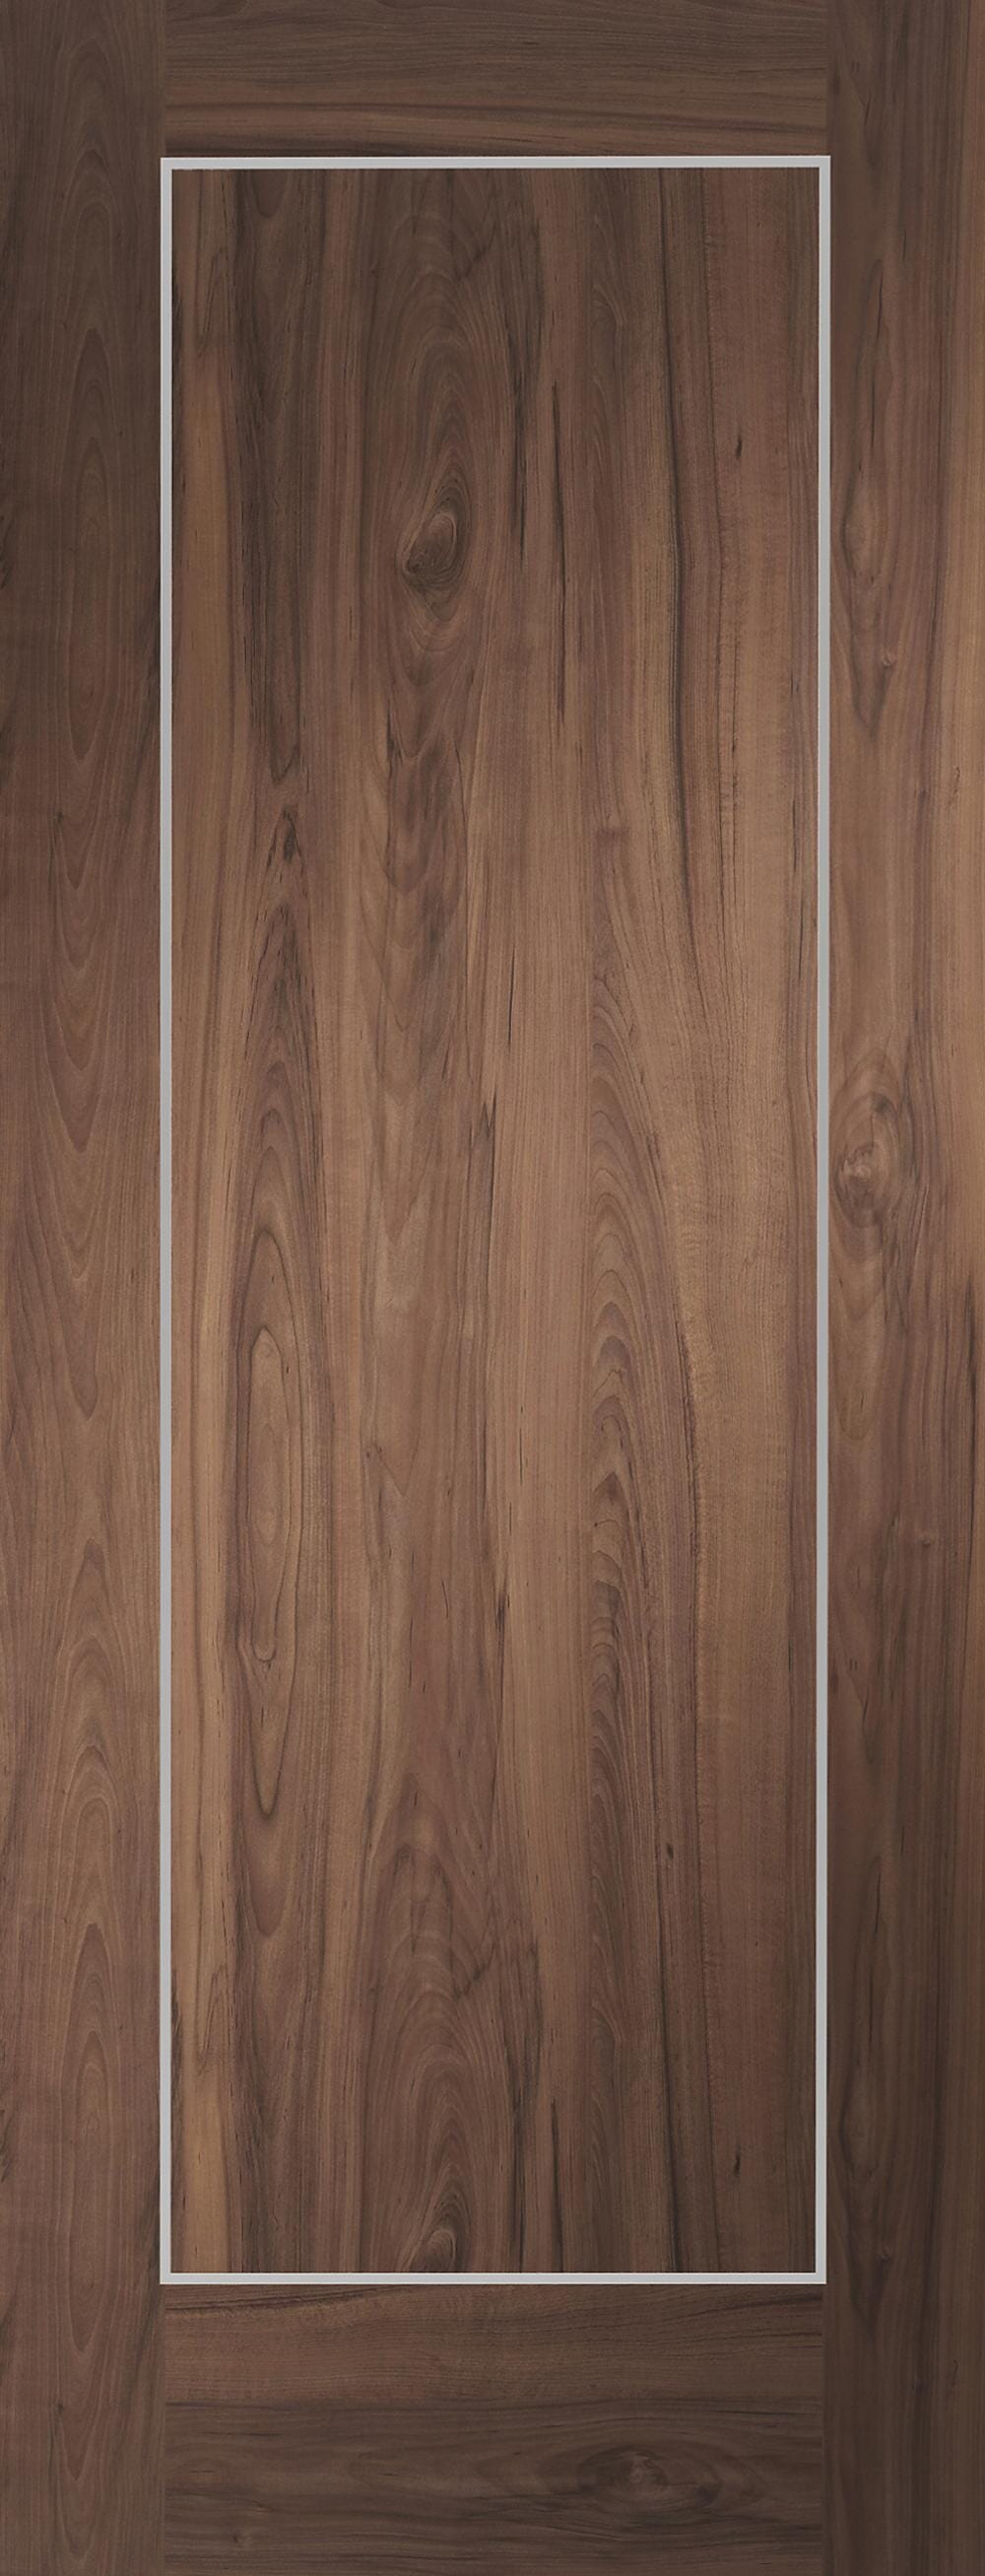 Varese Walnut - Prefinished  Image